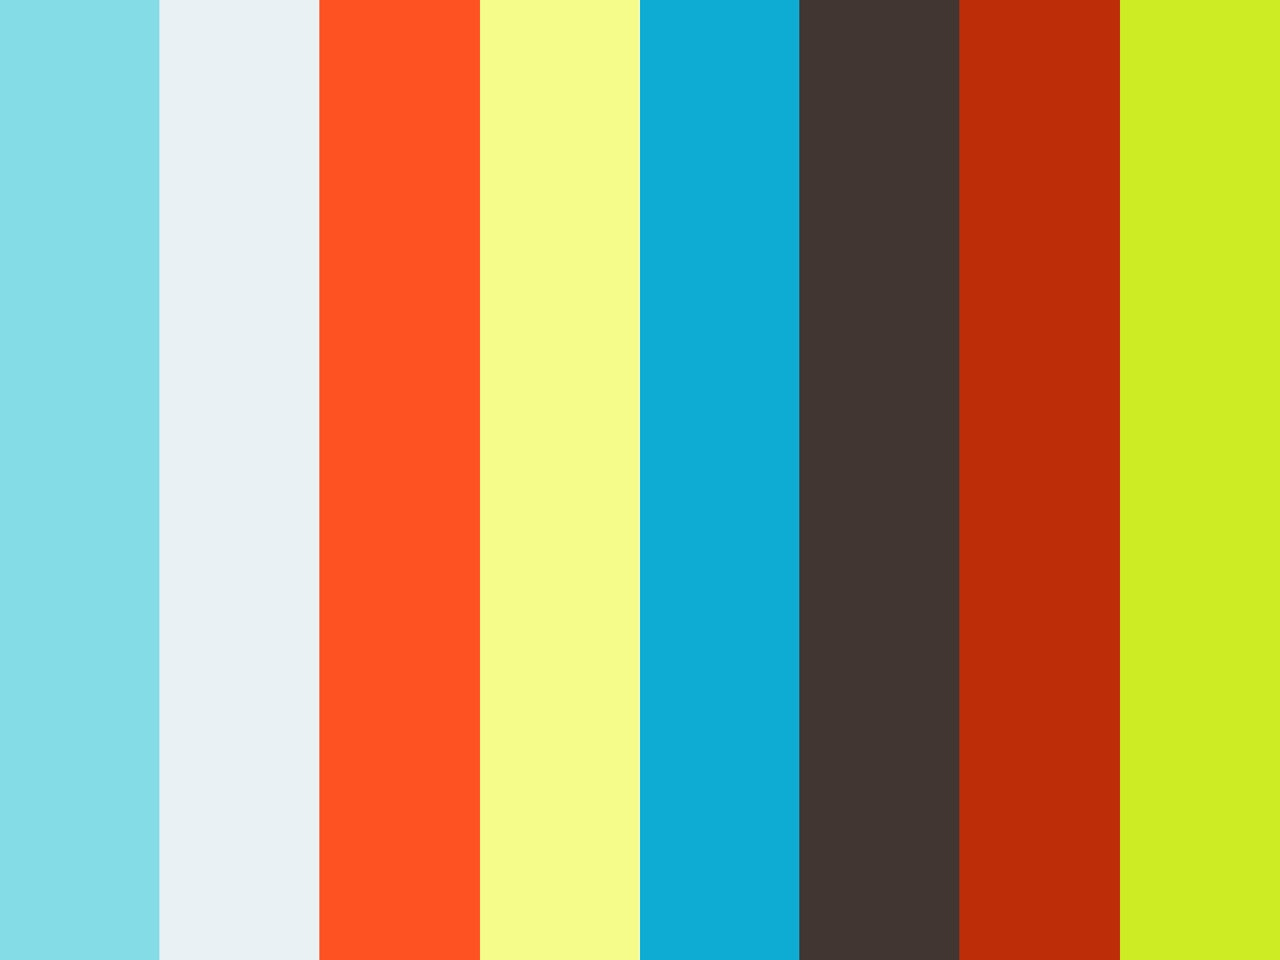 ICPA Webinar: Using Technology to Tackle Covid-19 in Corrections